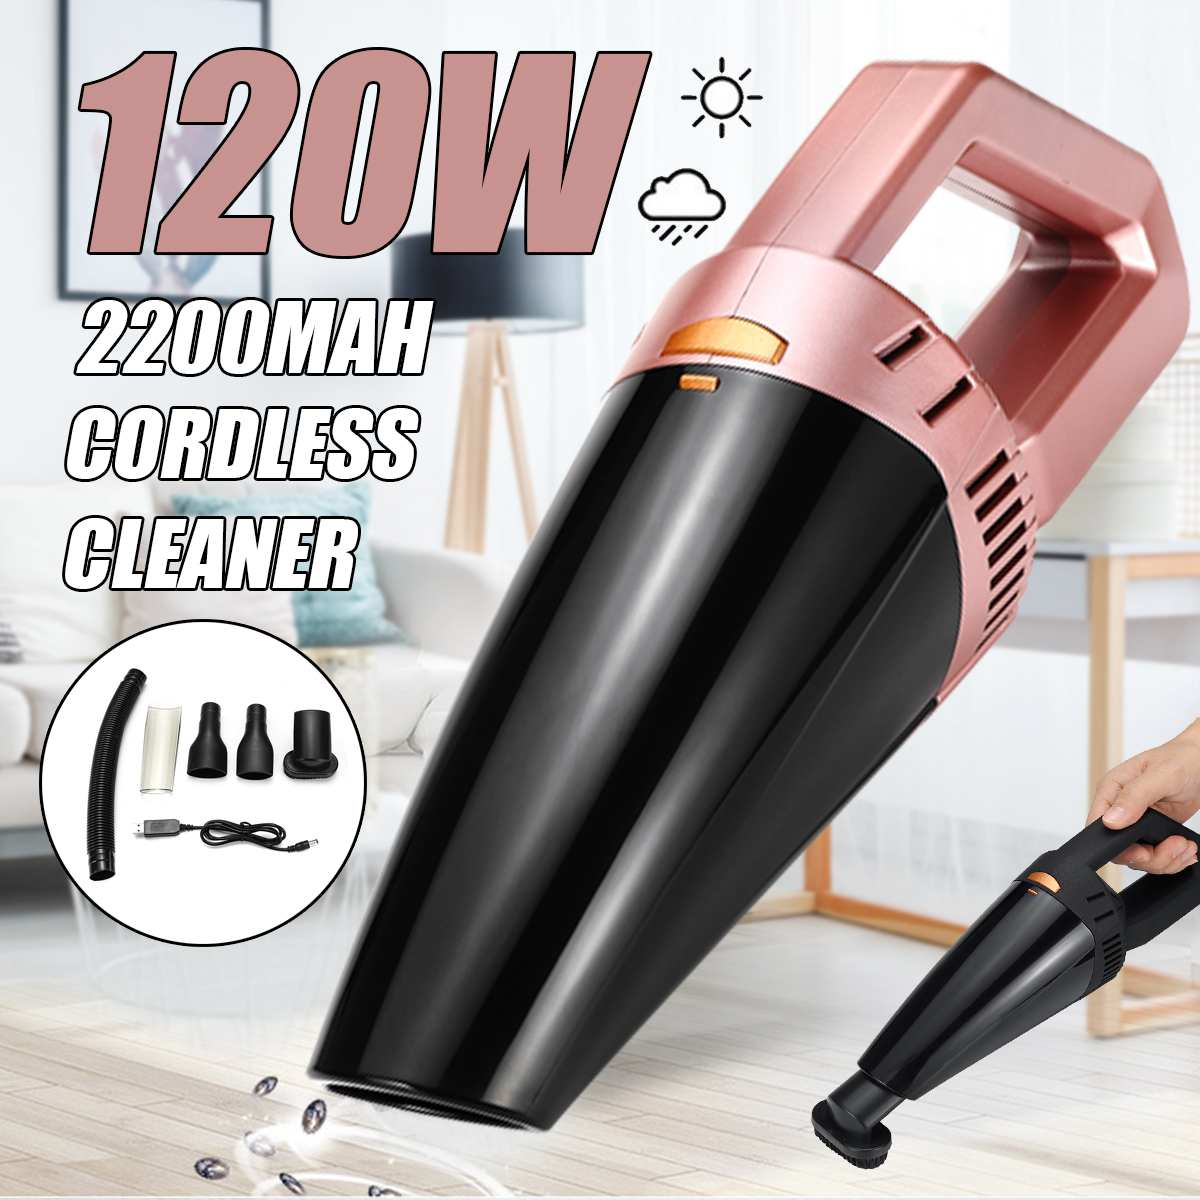 12V 120W Cordless Wireless Handheld Vacuum Cleaner Wet Dry USB Rechargeable Mini Portable Dust Collector For Home Car Cleaning